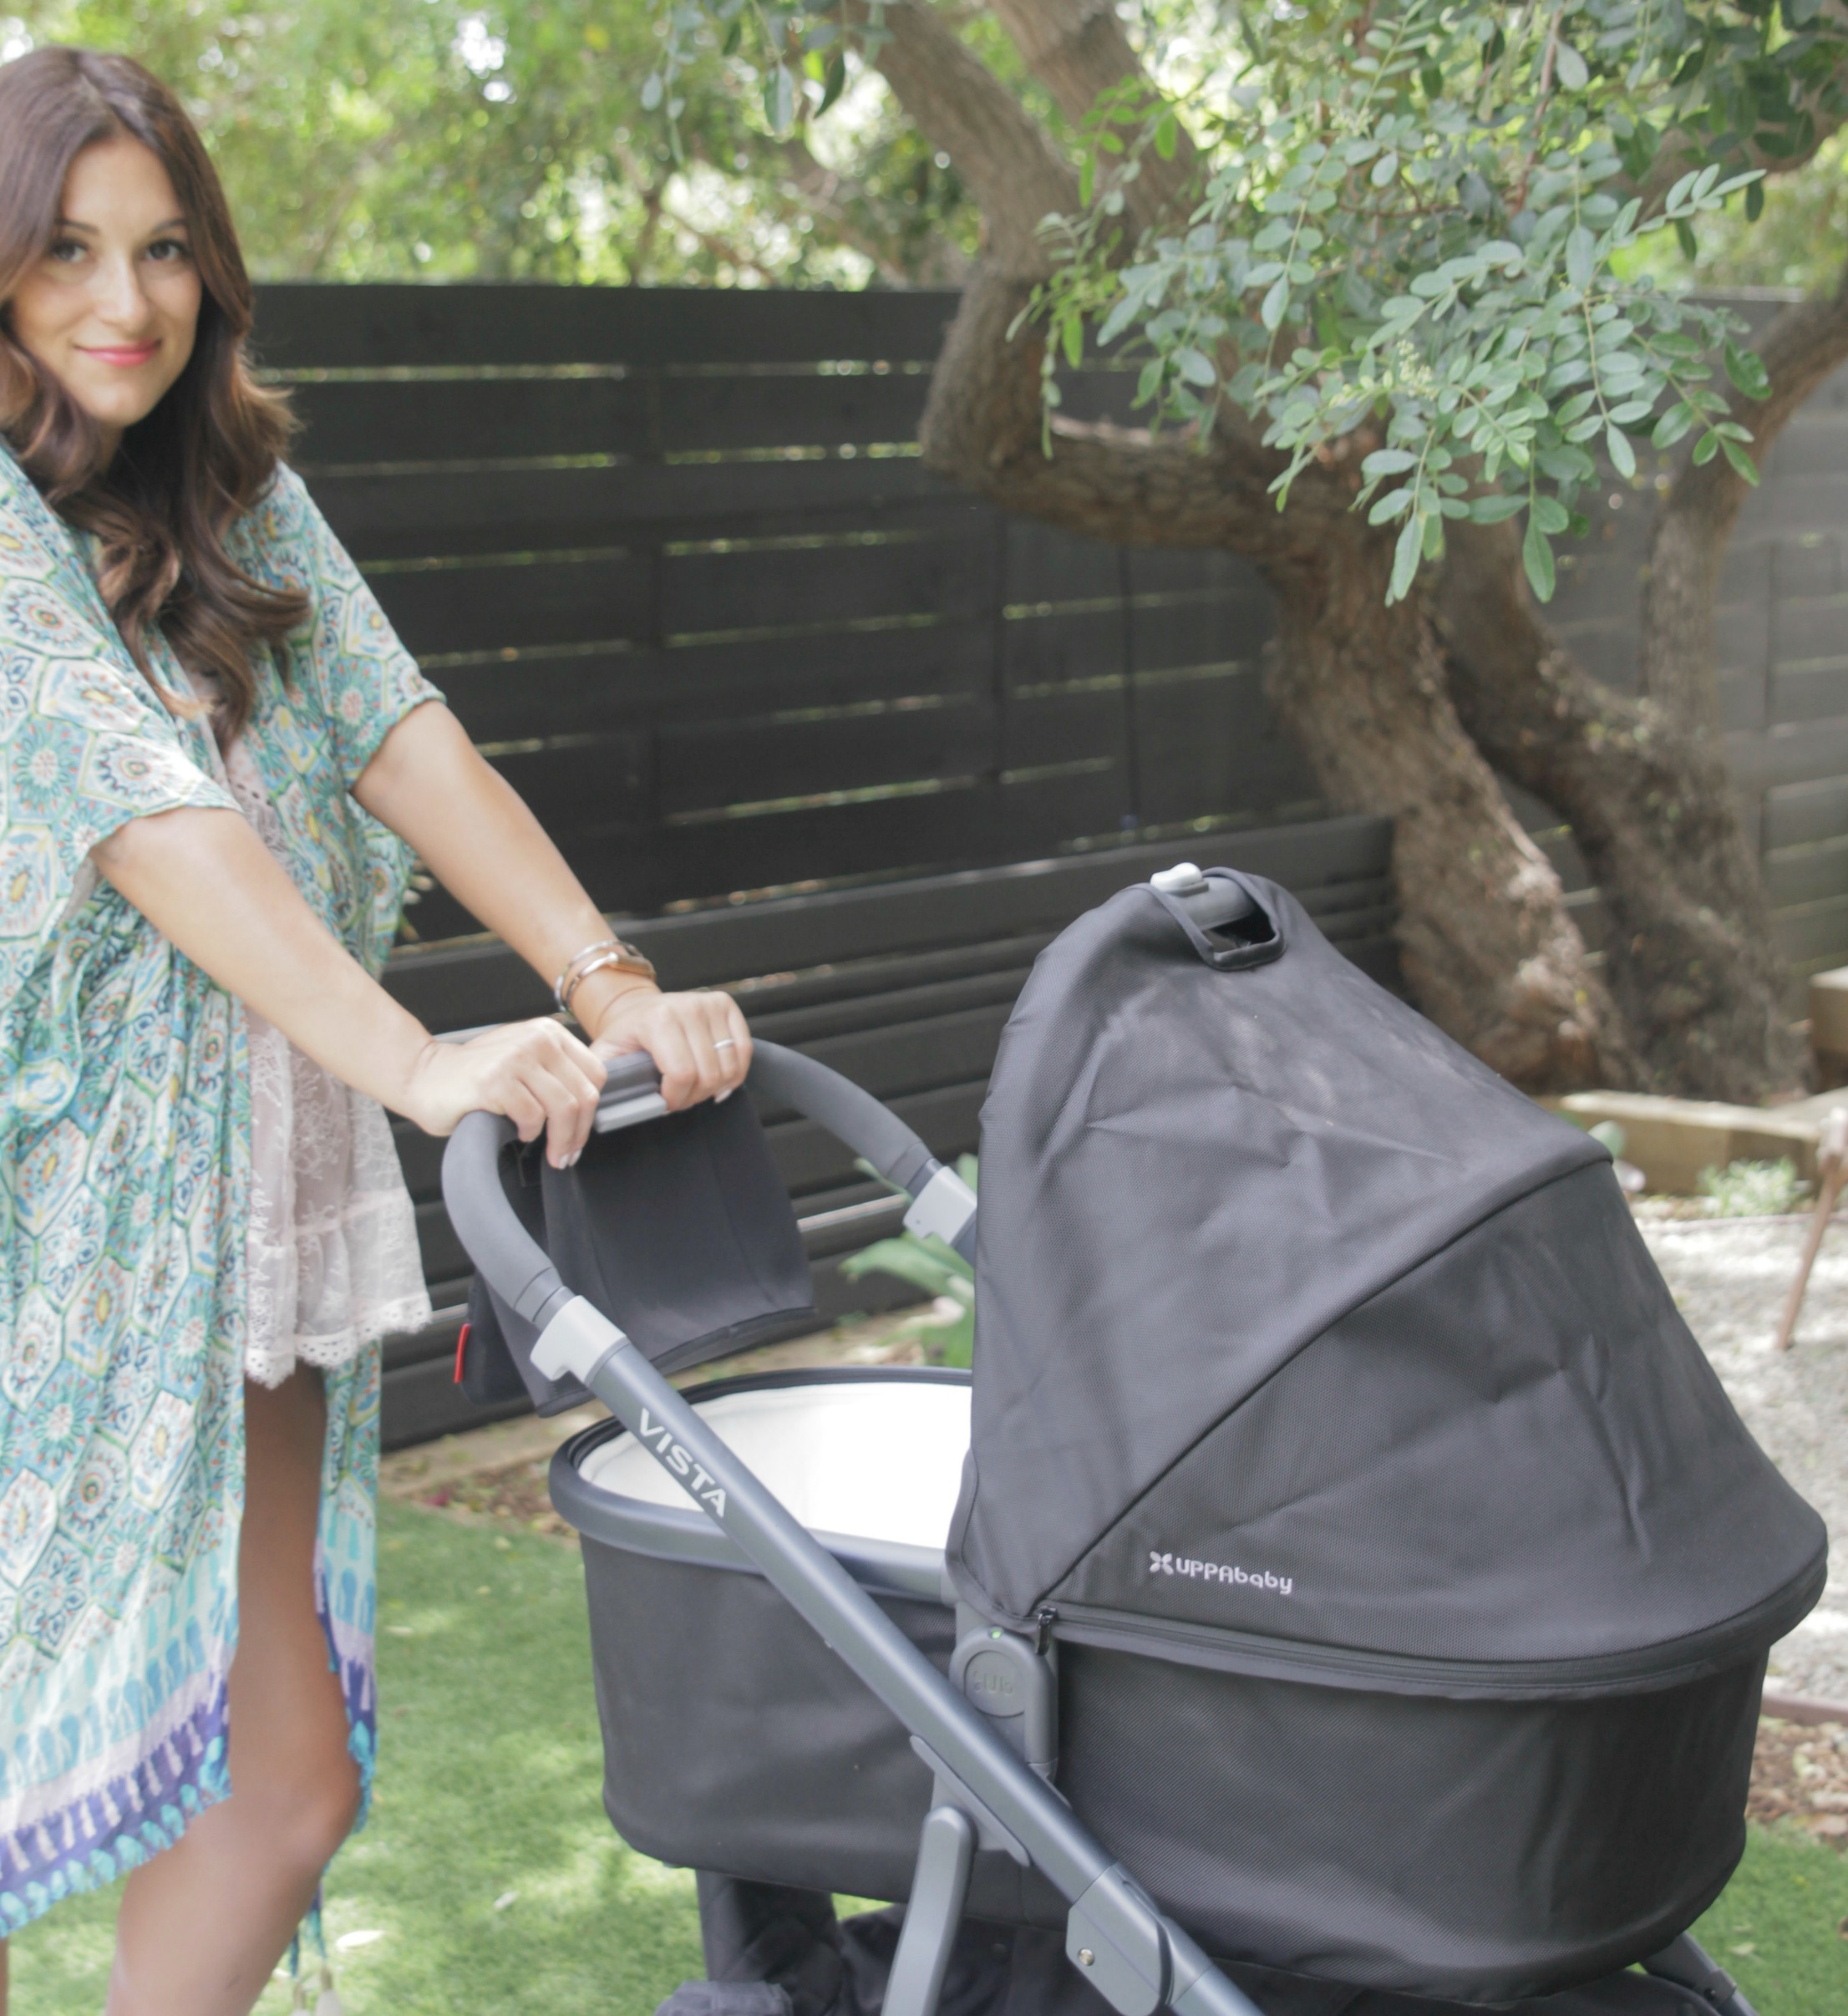 UPPAbaby VISTA Stroller for New Mamas